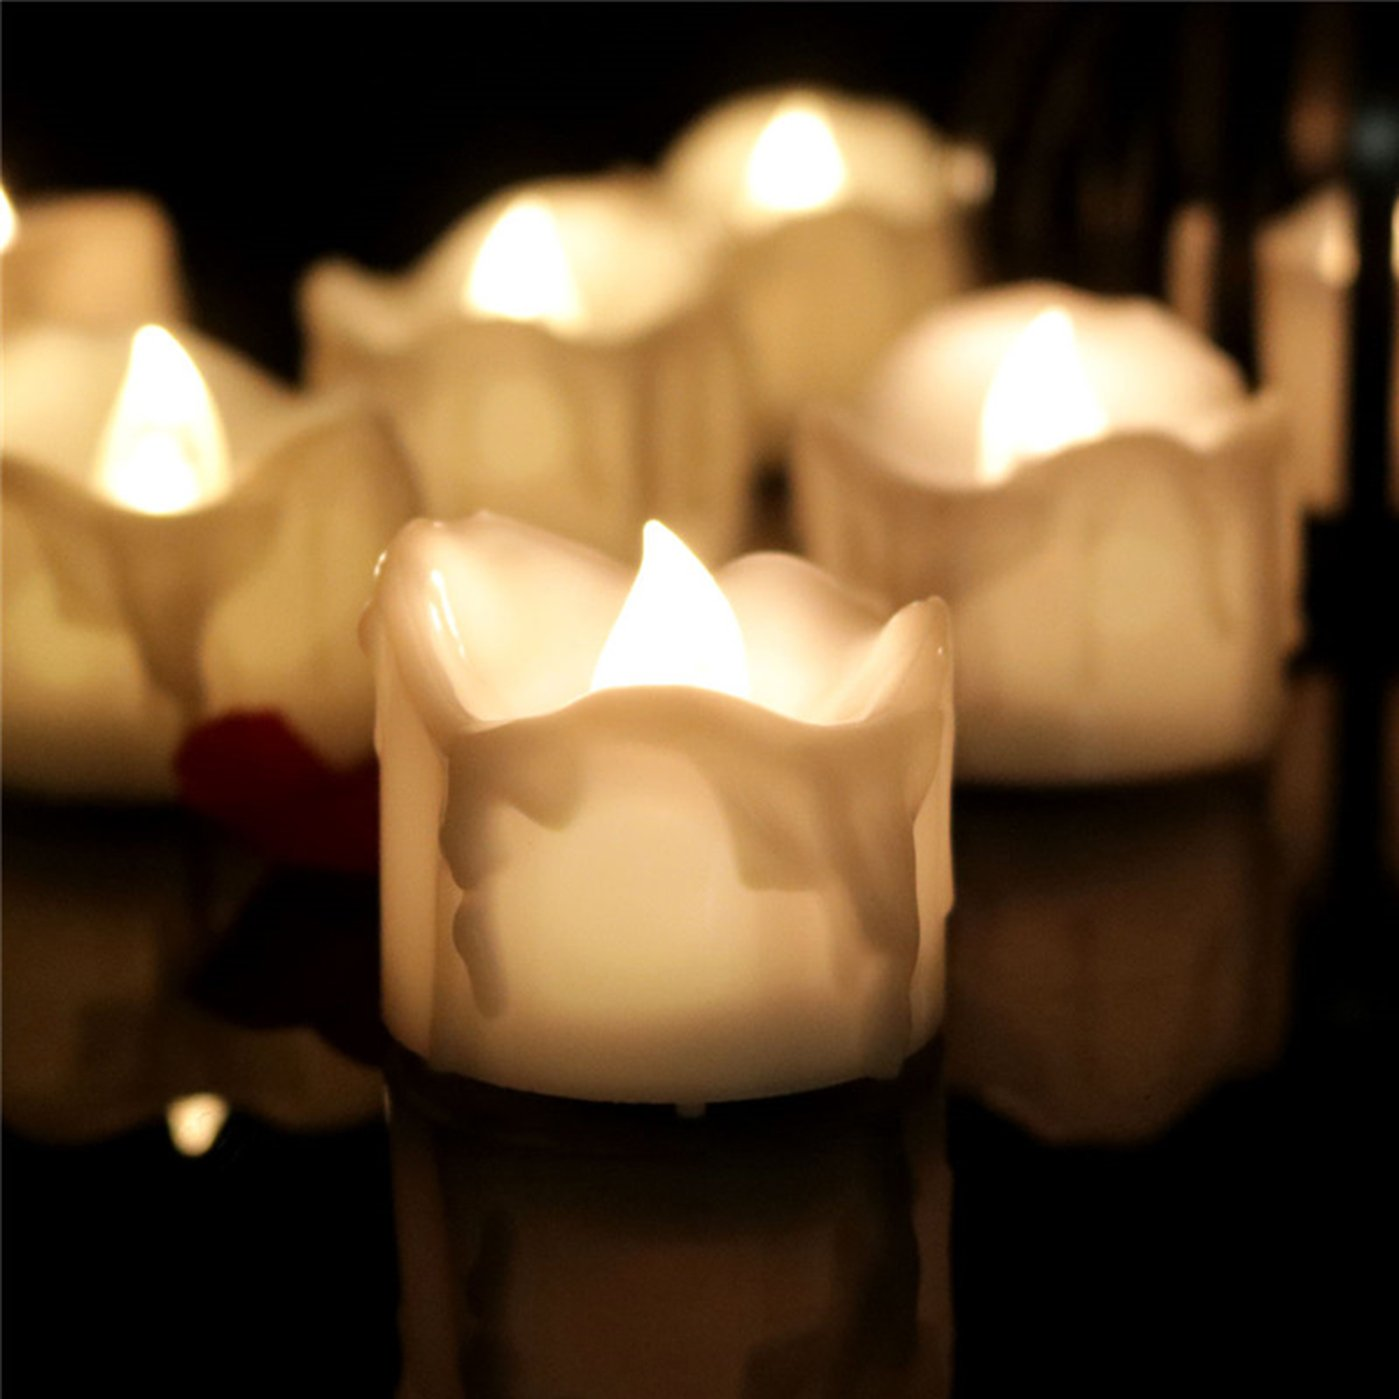 Dellukee 96pcs Pillar Flameless Candles Battery Operated No Flicker Warm White Small Cute LED Tea Lights Fake Candle Bulk for Wedding Birthday Christmas Family Party Decoration